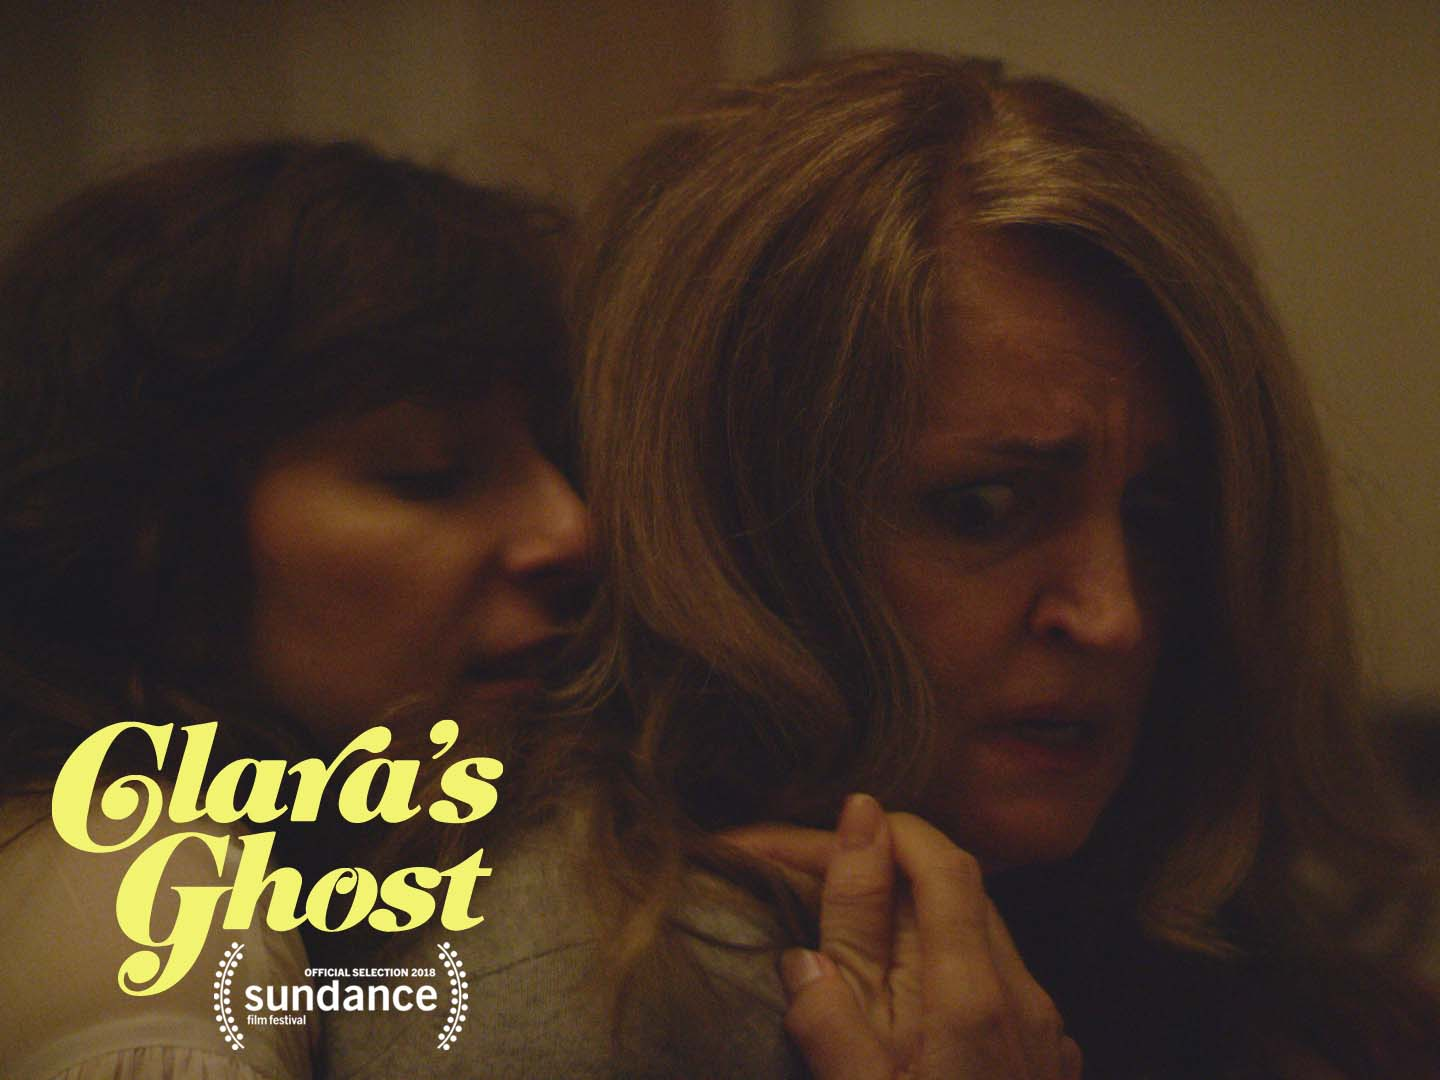 Coming to Sundance two years ago with her first short film, Affections , writer/director  Bridey Elliott graduates this year in her return to the festival with  Clara's Ghost , her feature directorial debut. Read the full interview  here